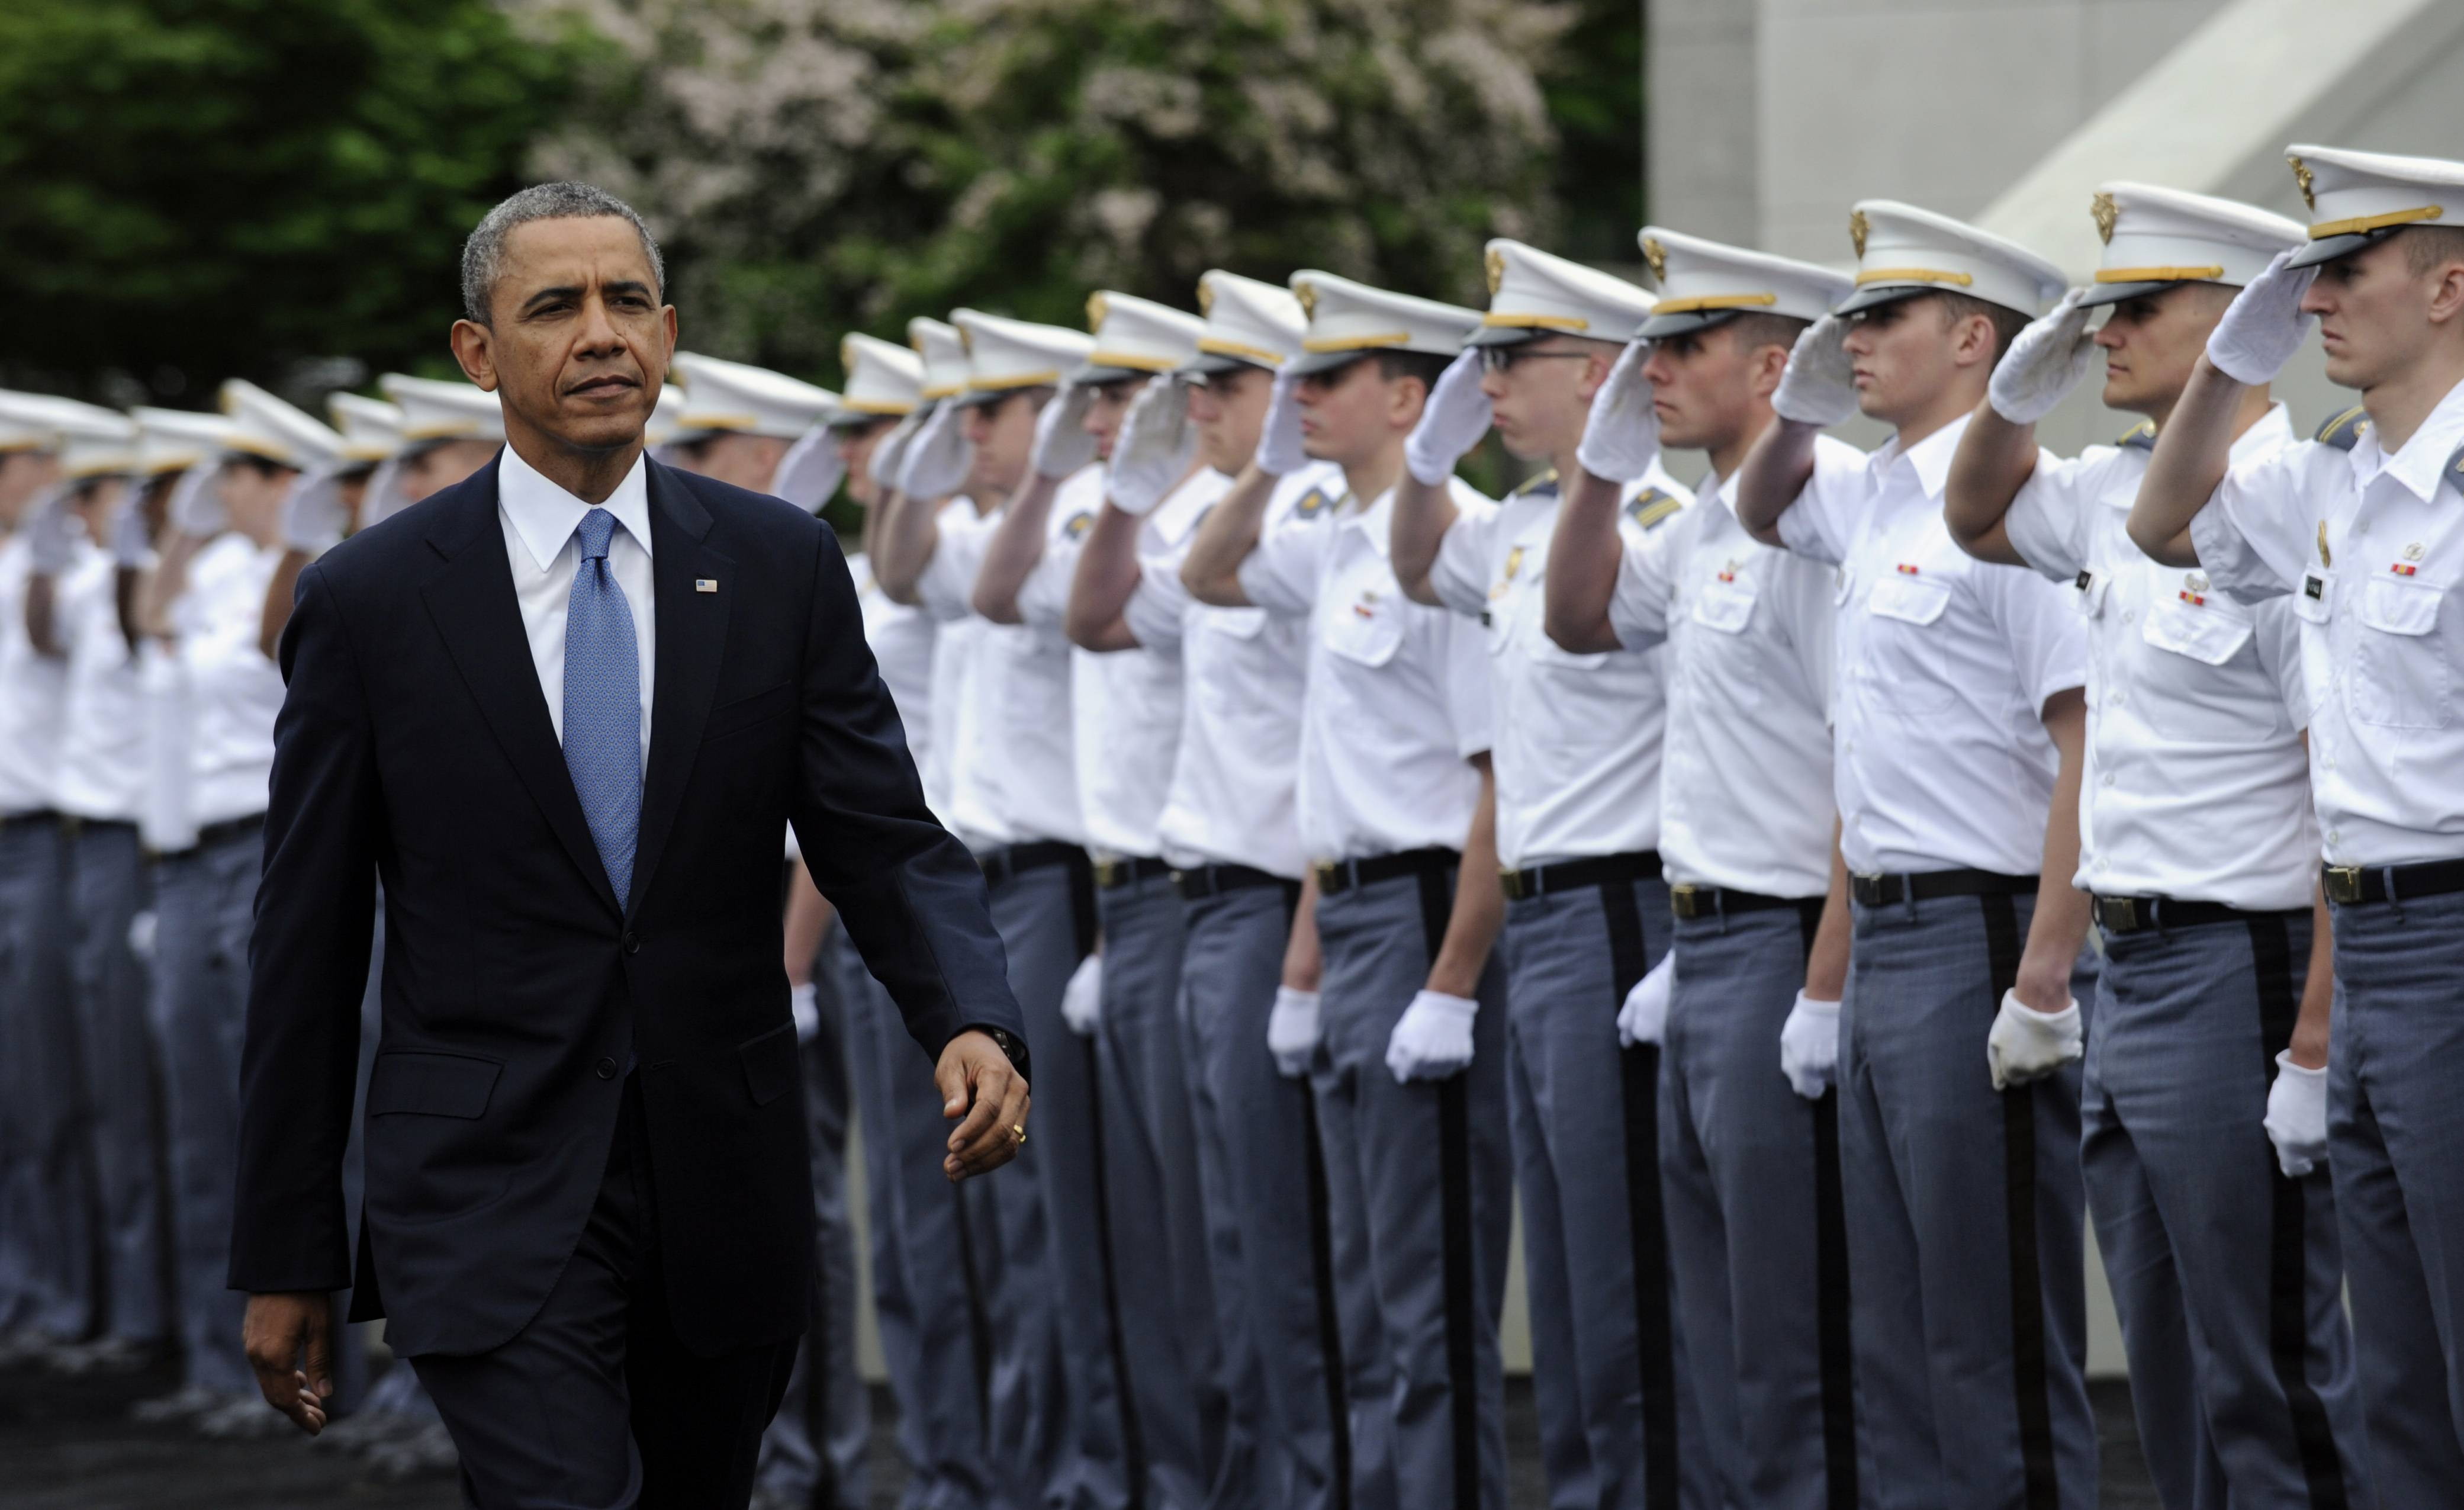 "President Barack Obama arrives to deliver the commencement address to the U.S. Military Academy at West Point's Class of 2014, Wednesday, May 28, 2014, in West Point, N.Y., Wednesday, May 28, 2014. In a broad defense of his foreign policy, the president declared that the U.S. remains the world's most indispensable nation, even after a ""long season of war,"" but argued for restraint before embarking on more military adventures."